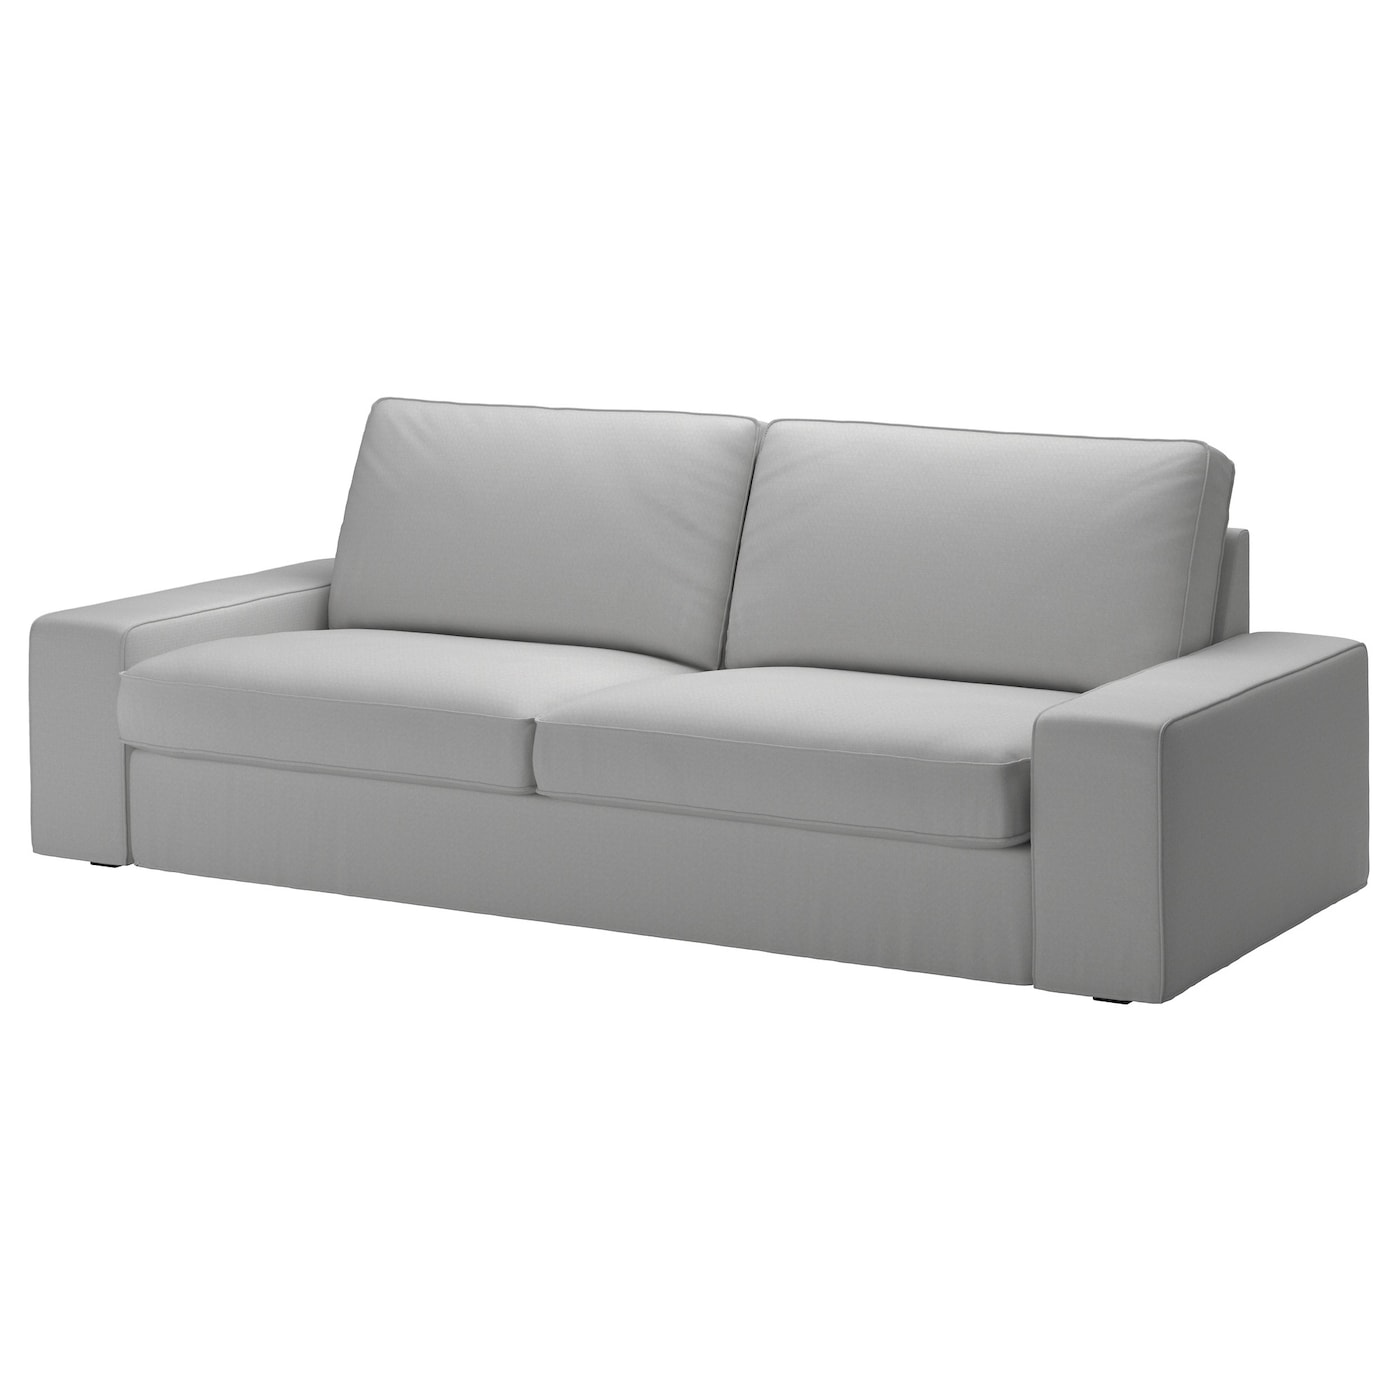 KIVIK Three seat sofa Orrsta light grey